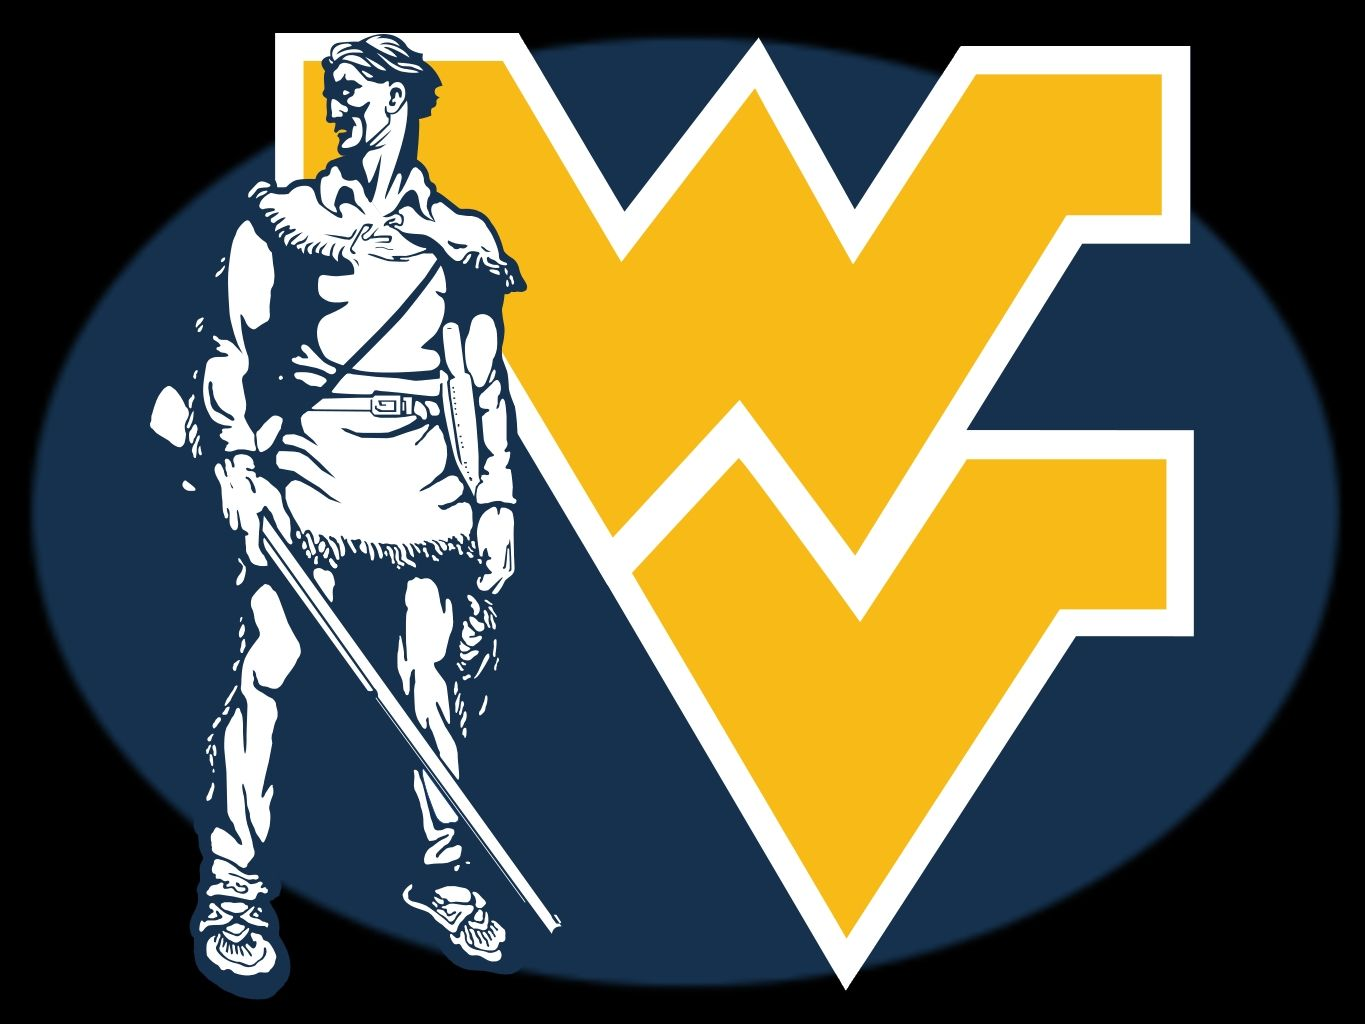 Goooooo Mountaineers Wvu Football Wallpaper Wvu Football West Virginia